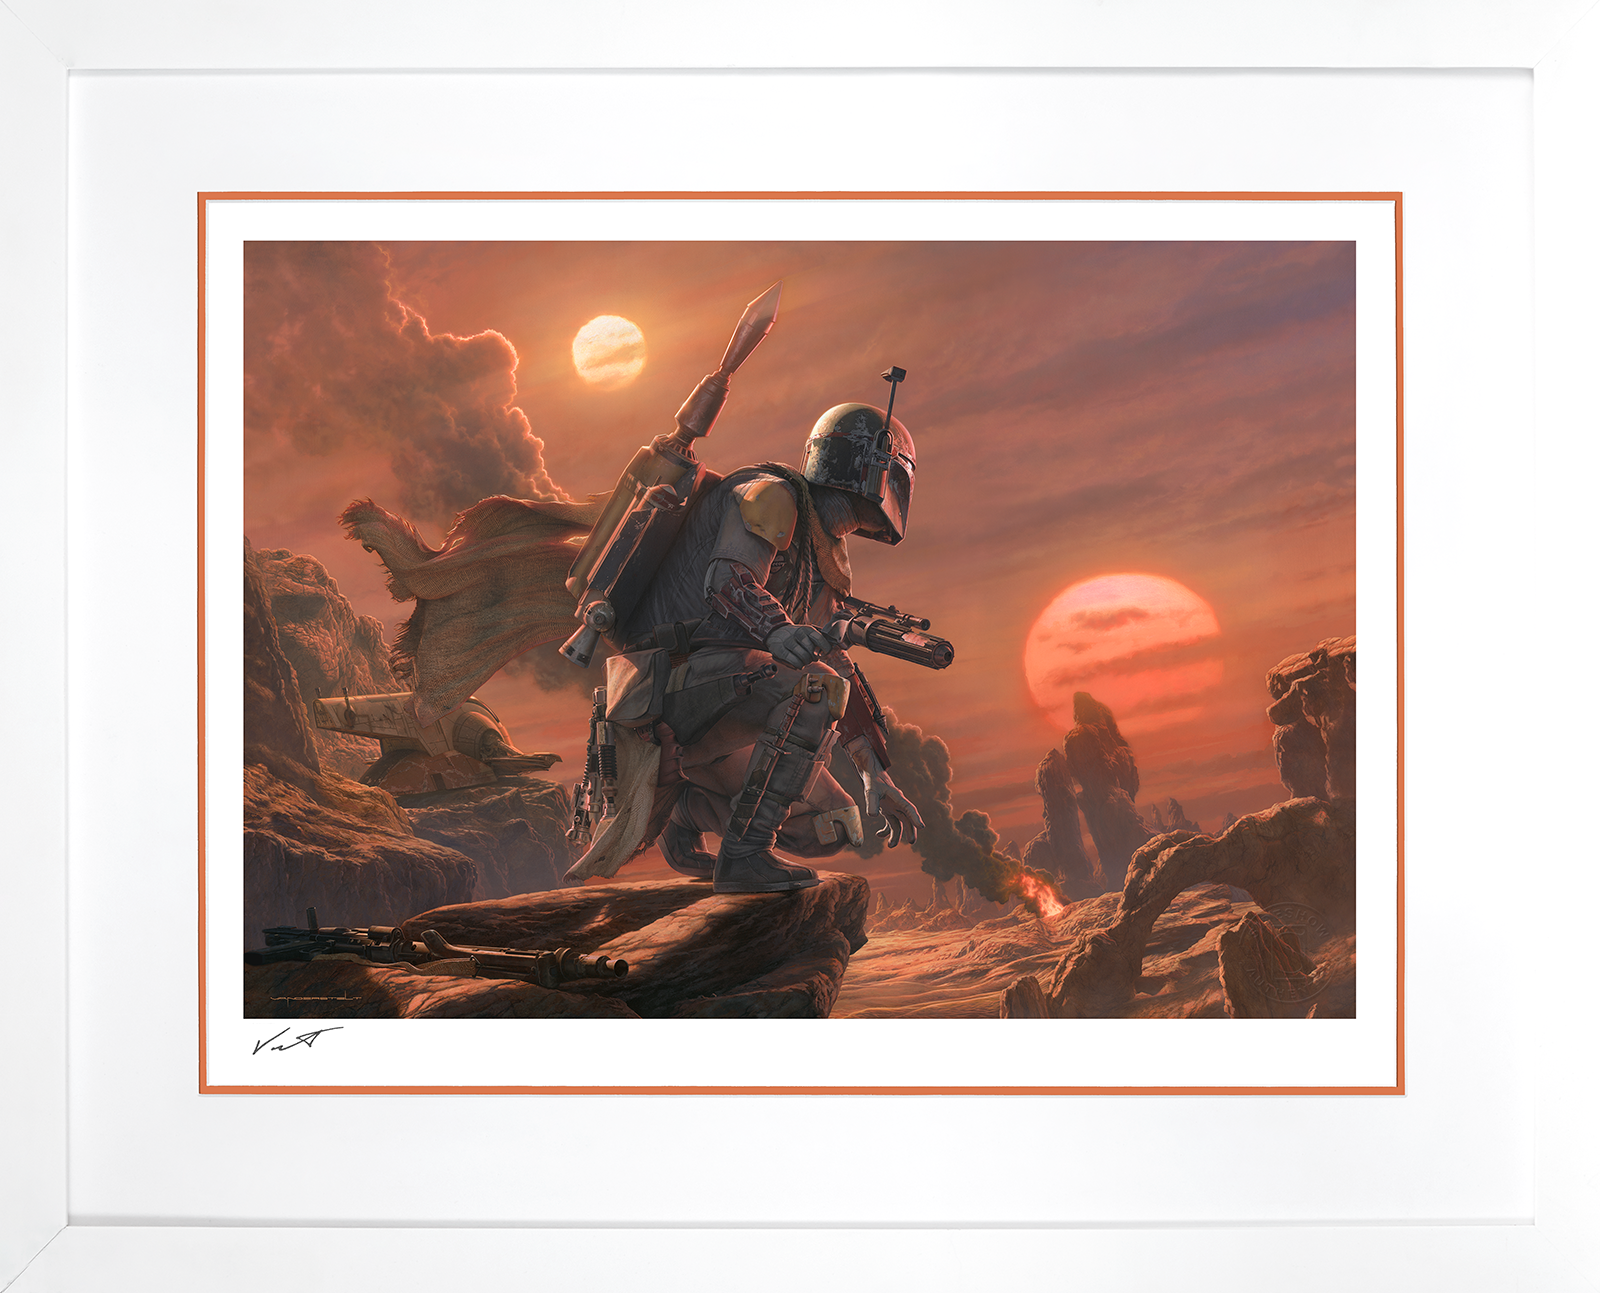 Sideshow Collectibles Boba Fett: Dead or Alive Art Print